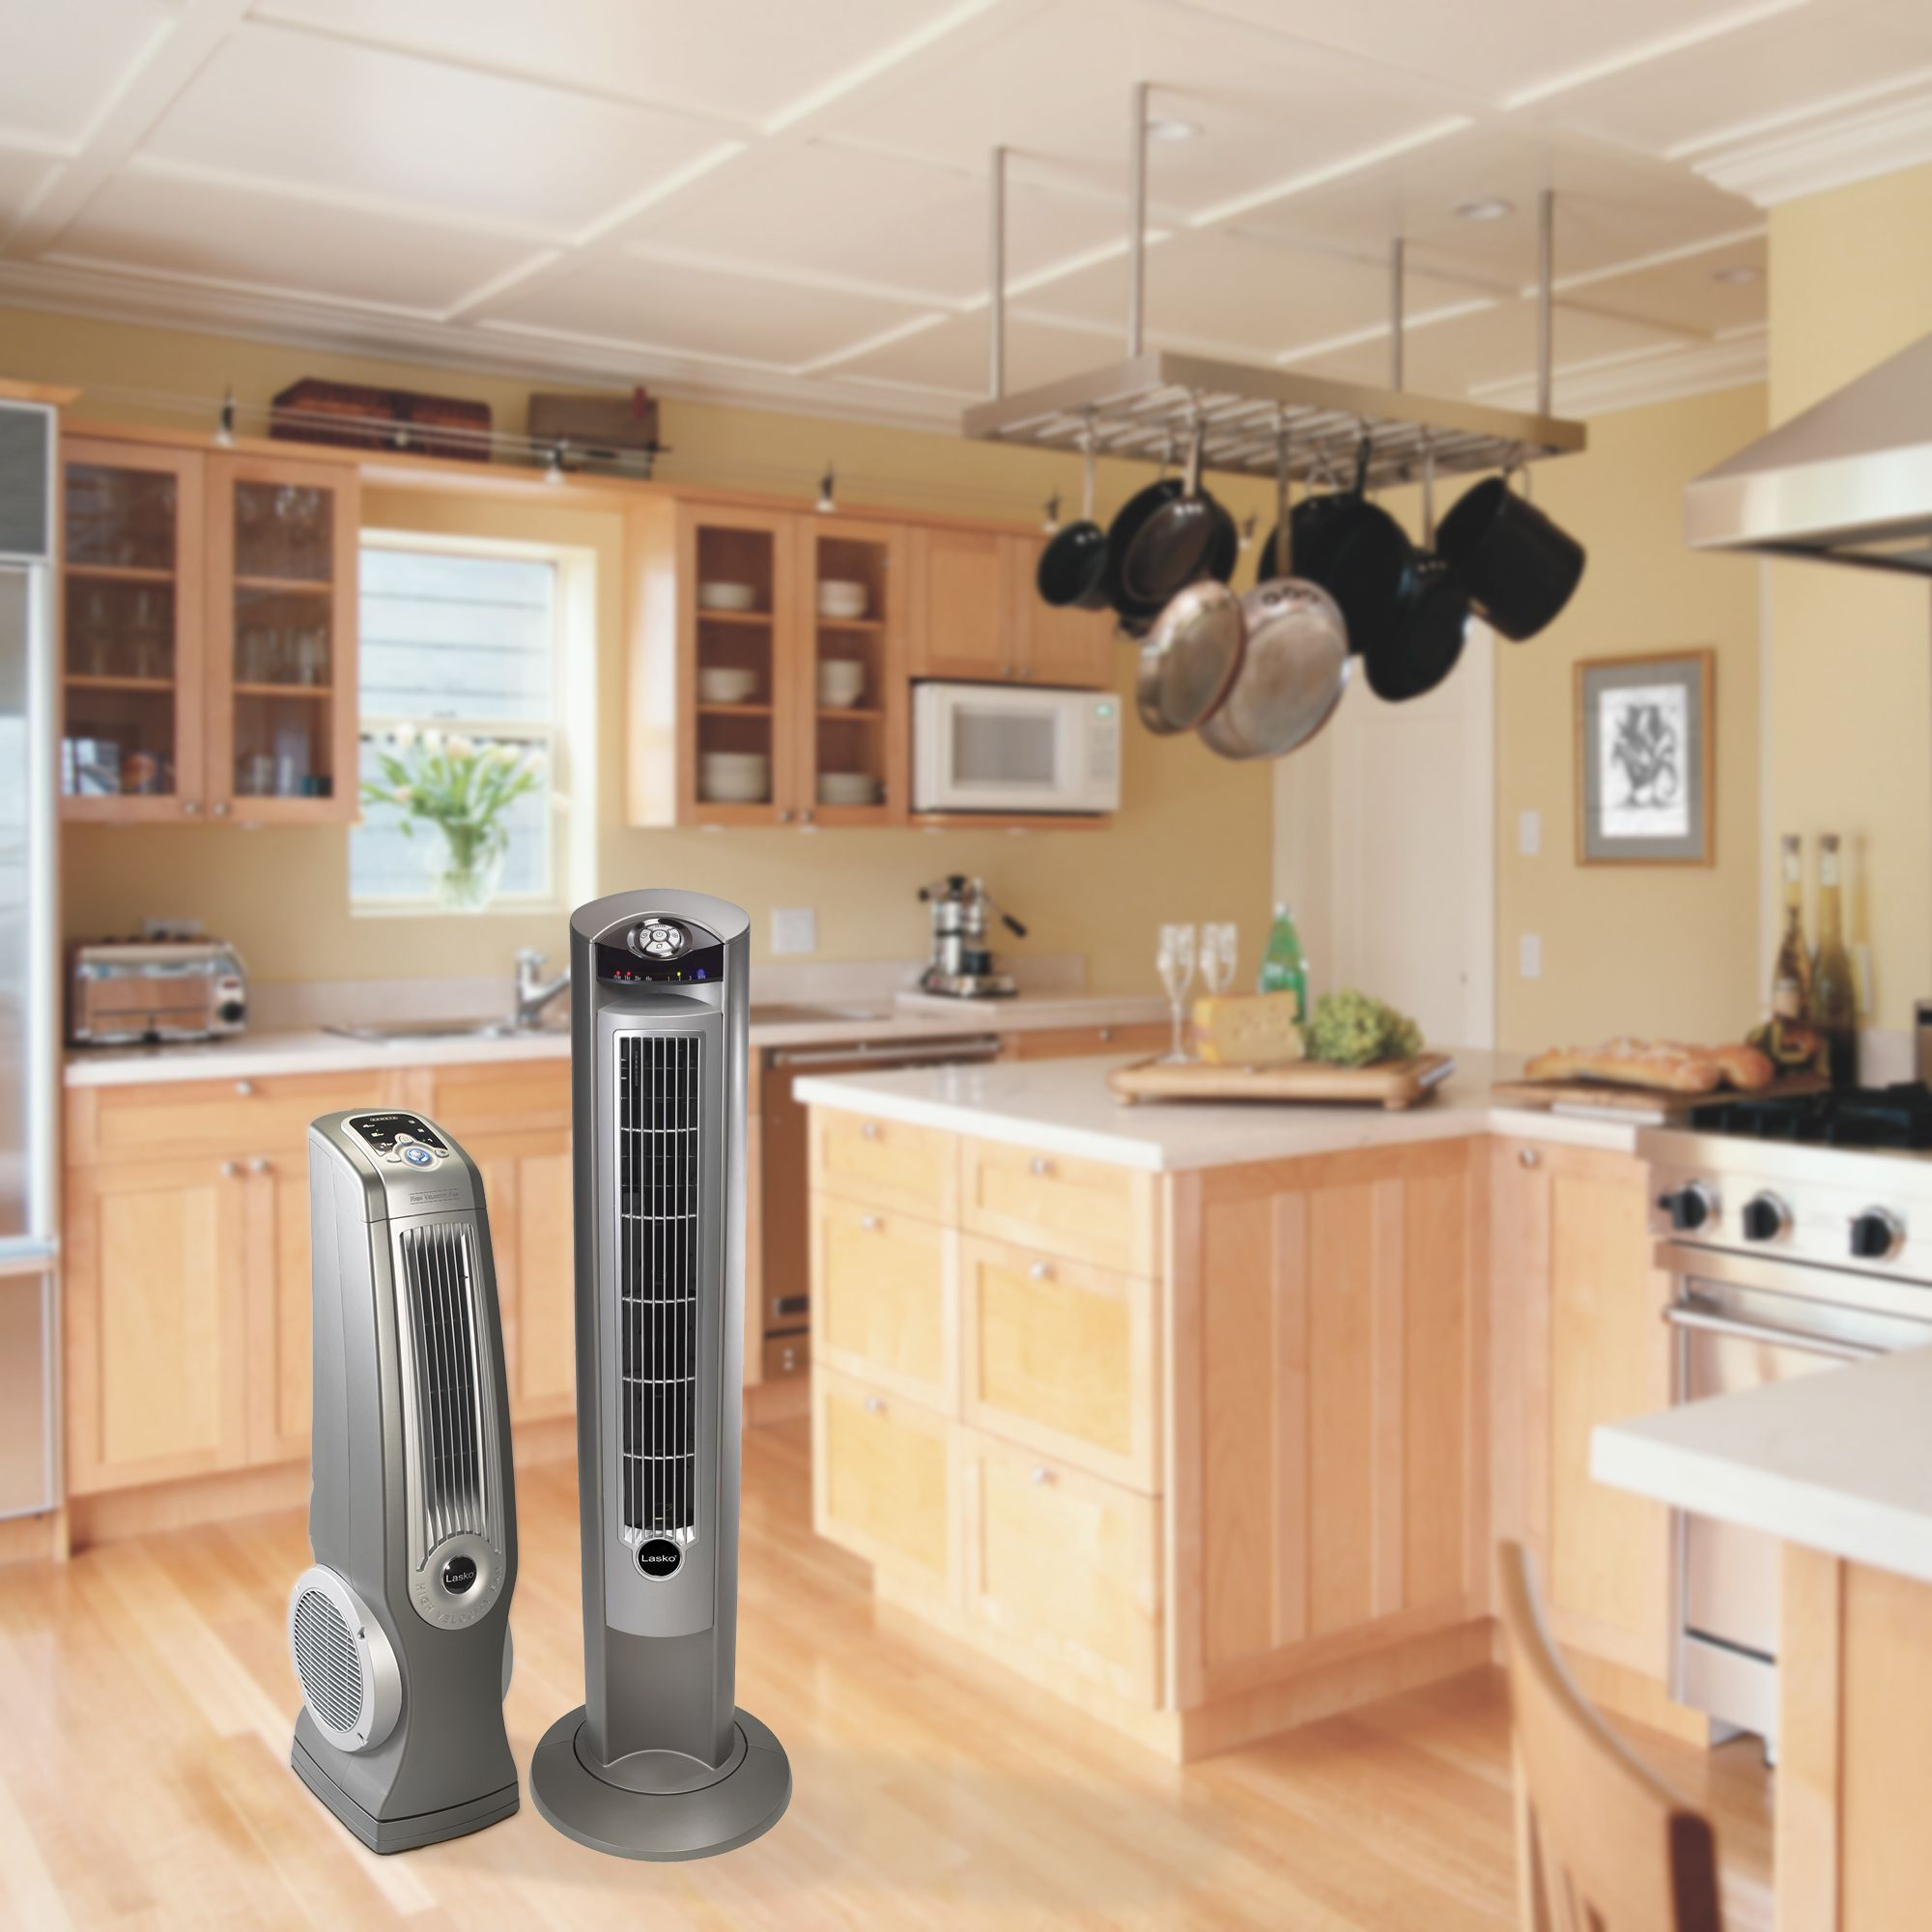 Two Lasko Fans Were Included On The List Of Best Cooling Tower To Chill A Room By Top9rated